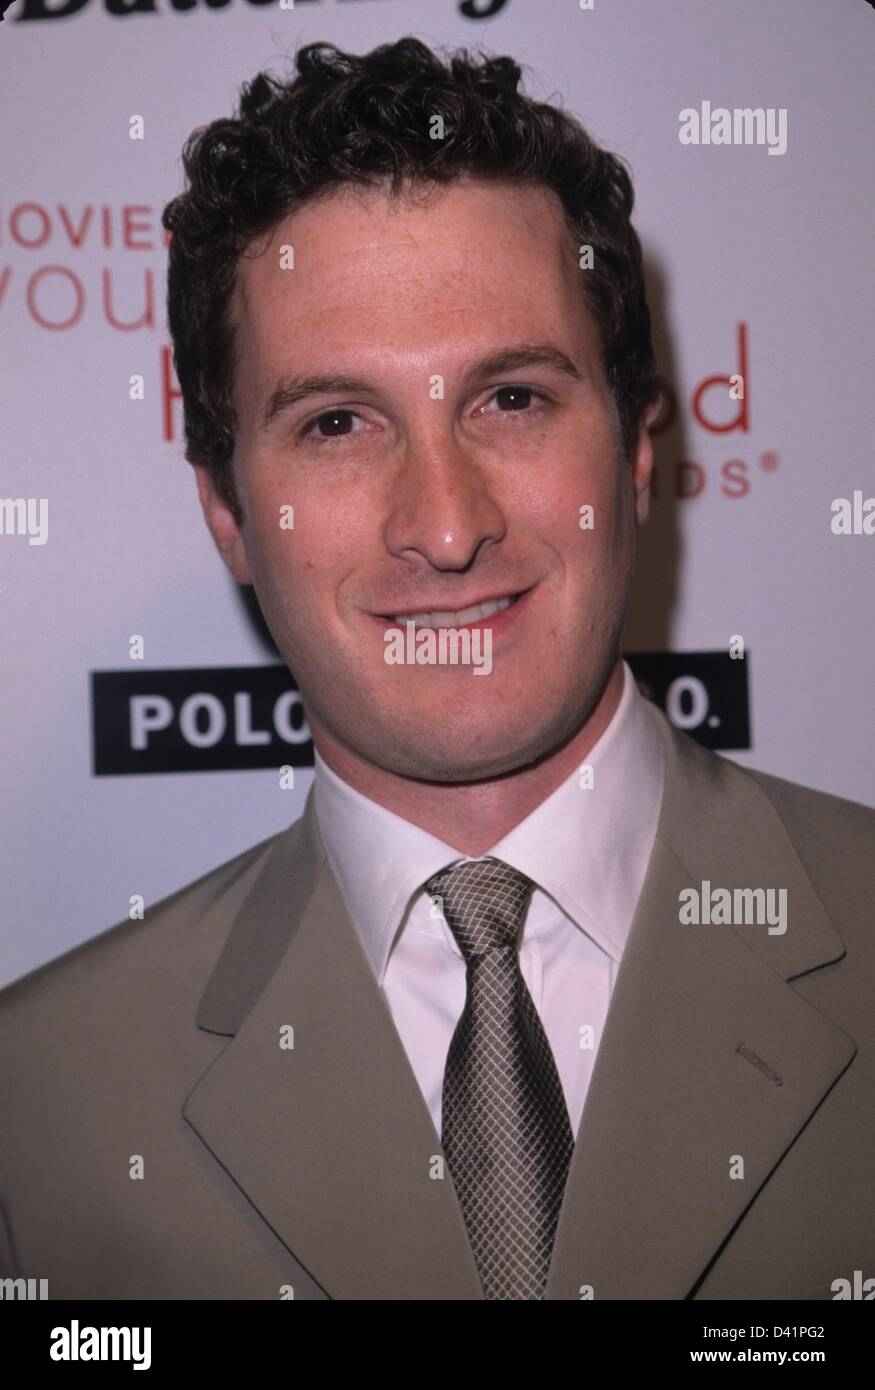 DARREN ARONOFSKY.The 3rd Movieline Young Hollywood Awards at House of Blues in Hollywood , Ca. 2001.k21695psk.(CreditStock Photo